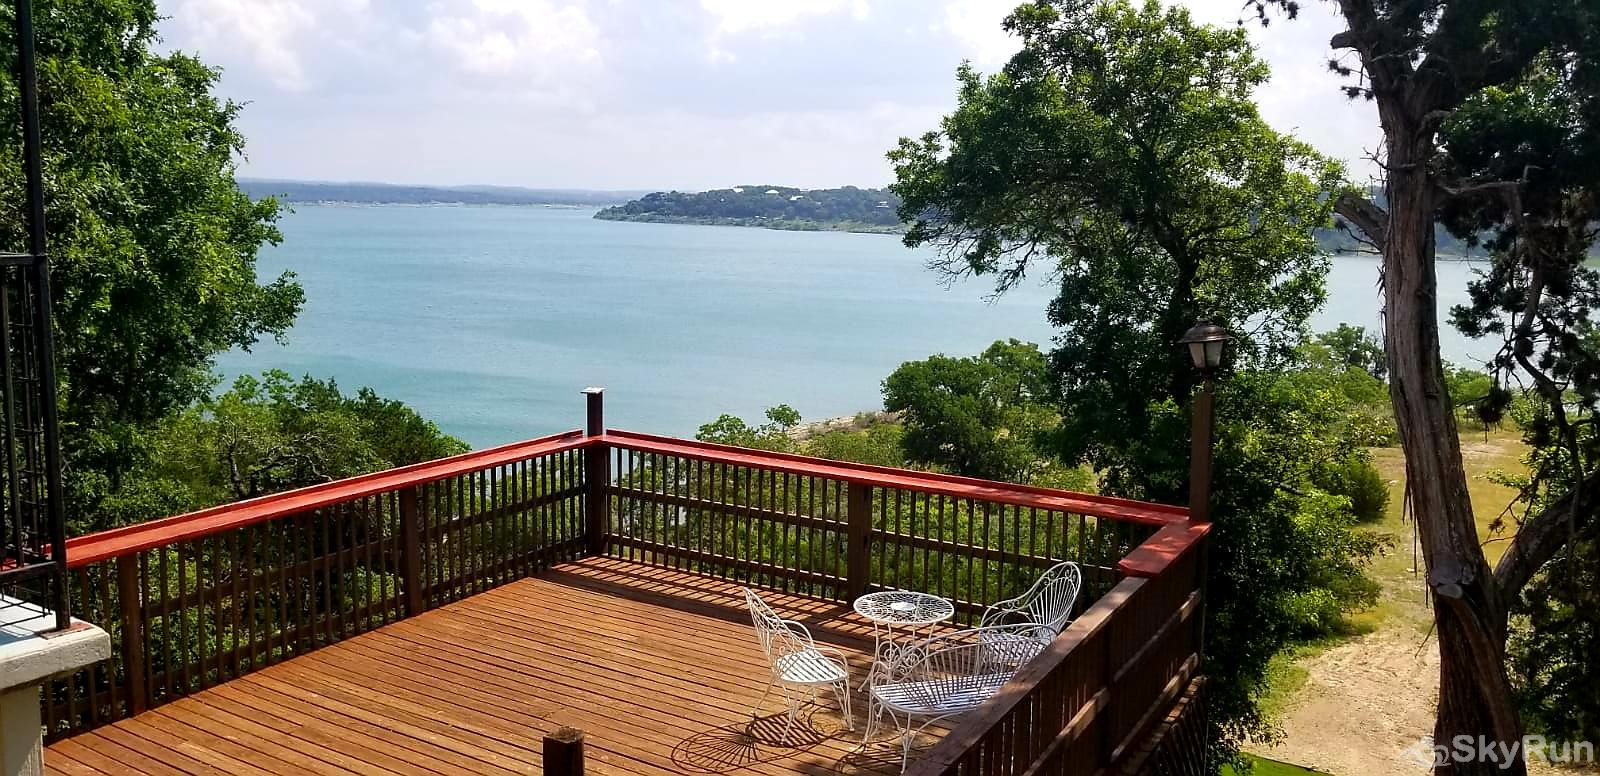 WATERFRONT GRACE Beautiful waterfront Canyon Lake view from the deck